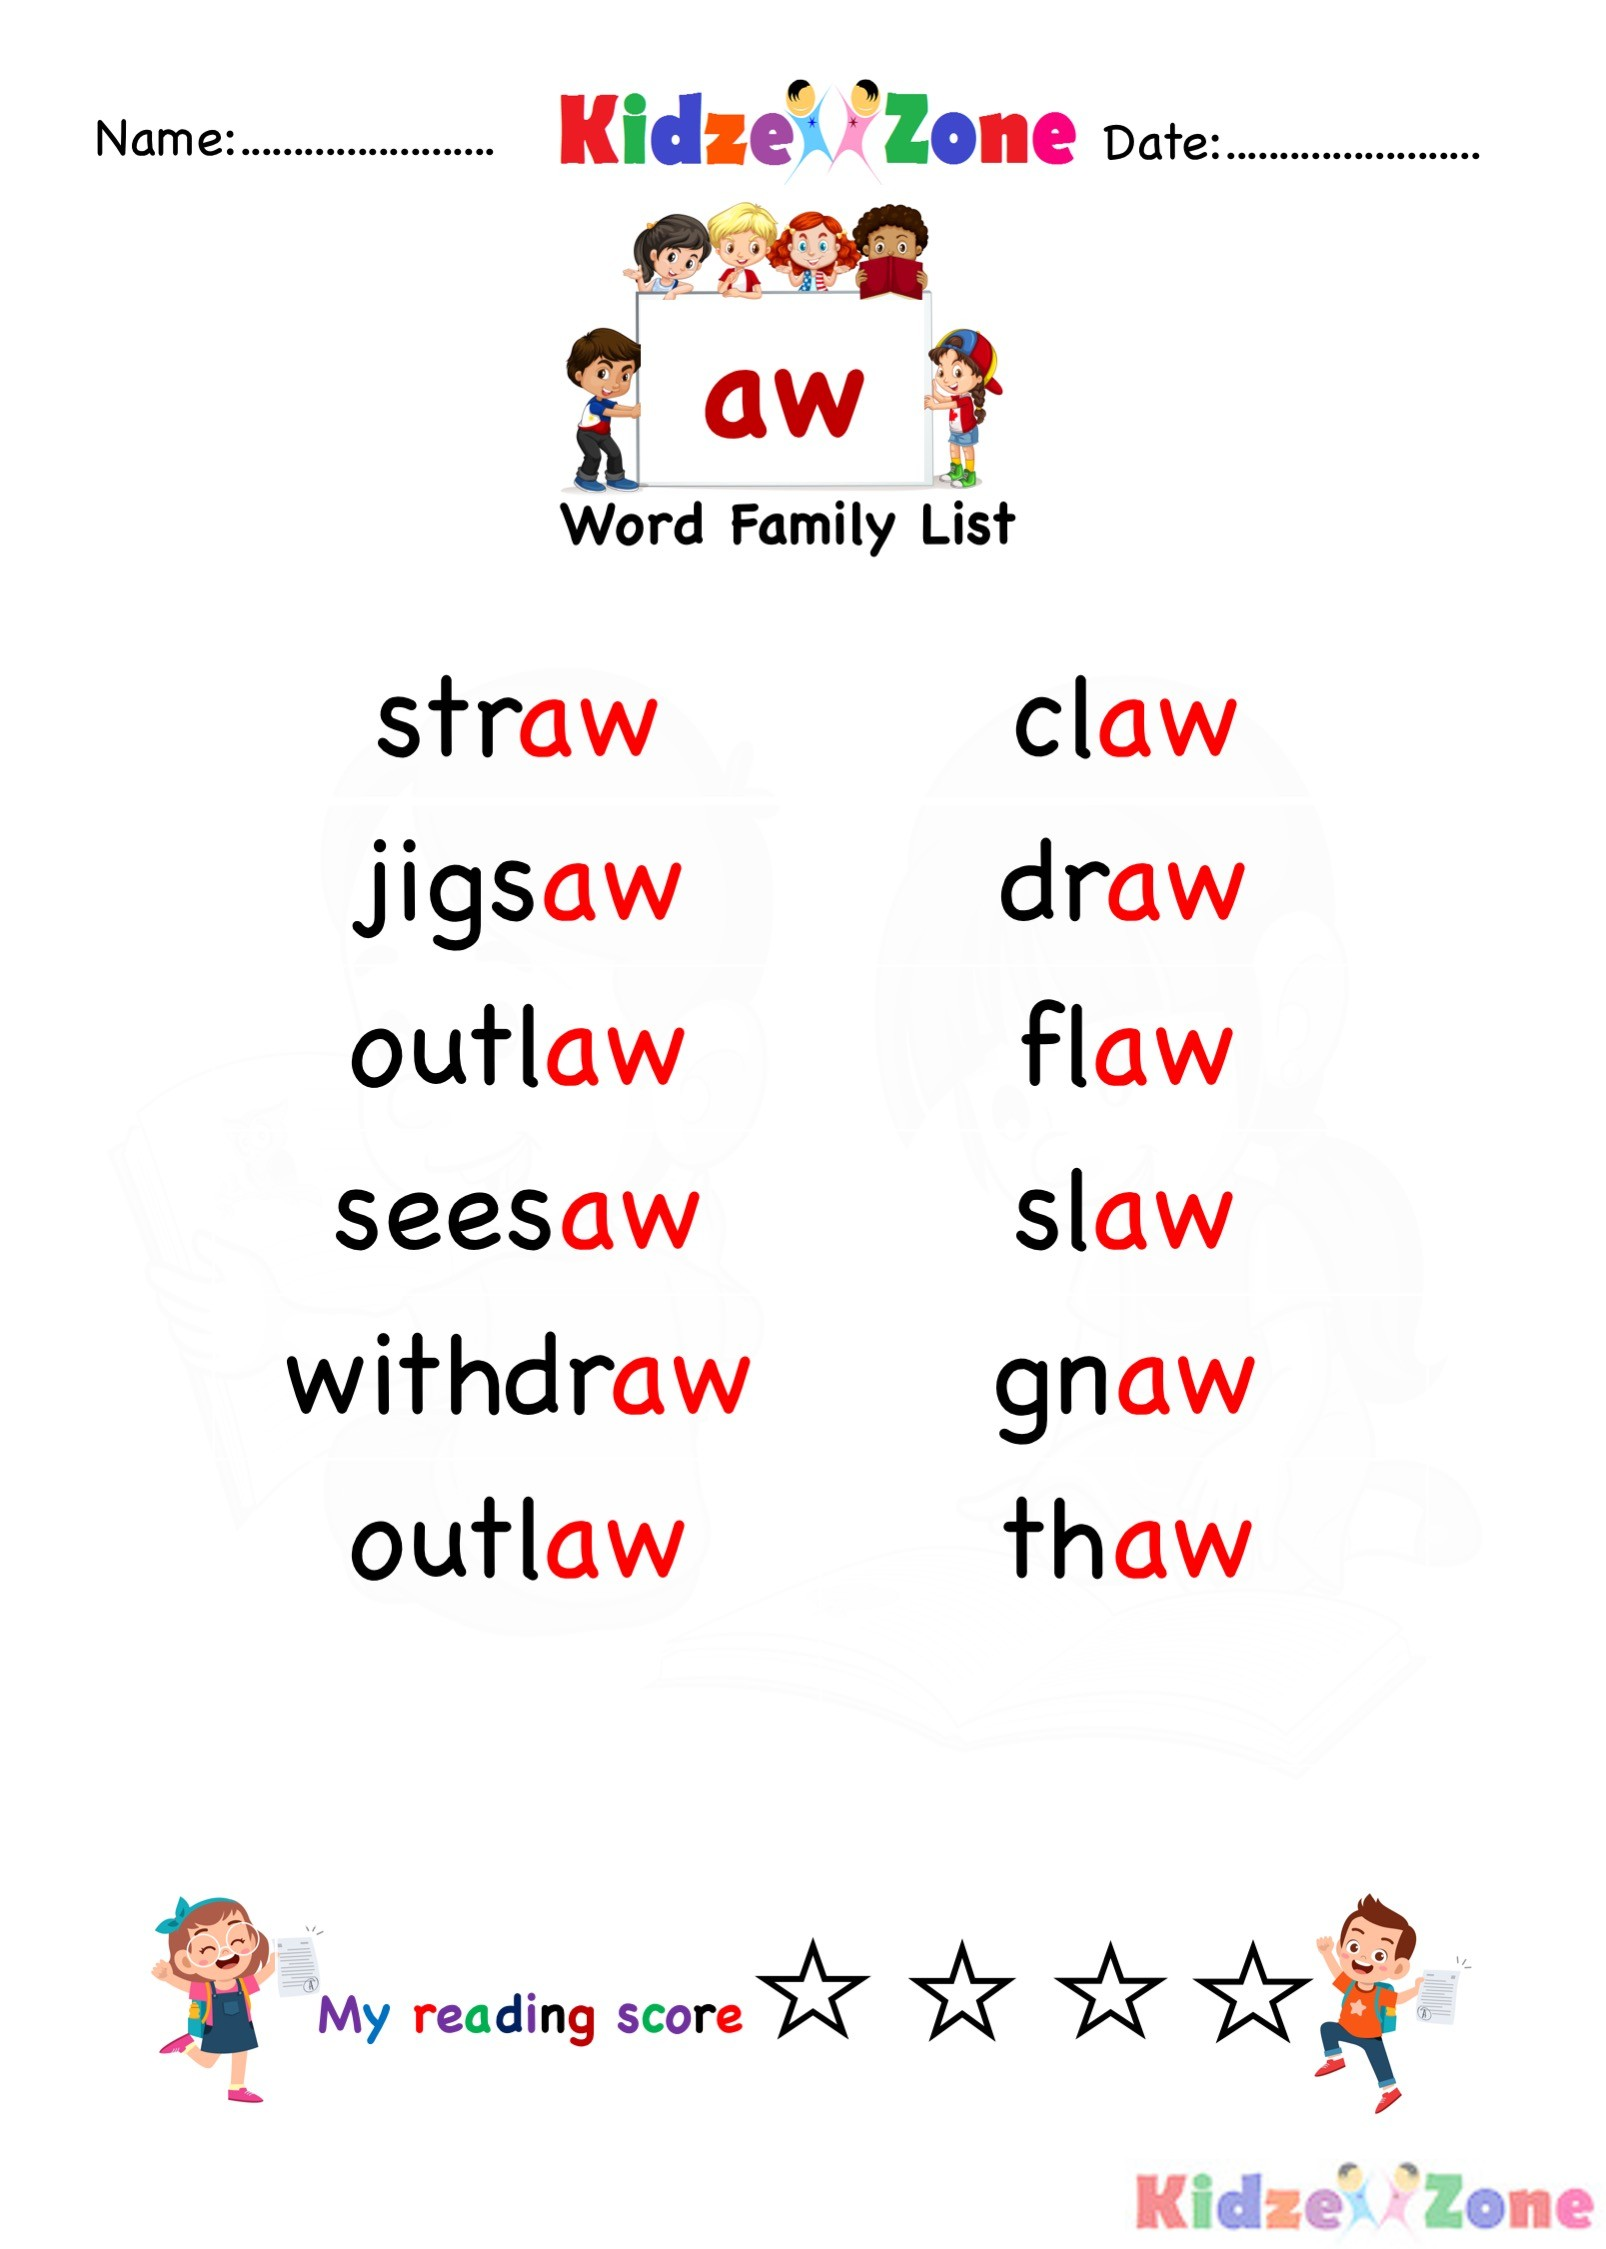 Explore And Learn Words From Aw Word Family